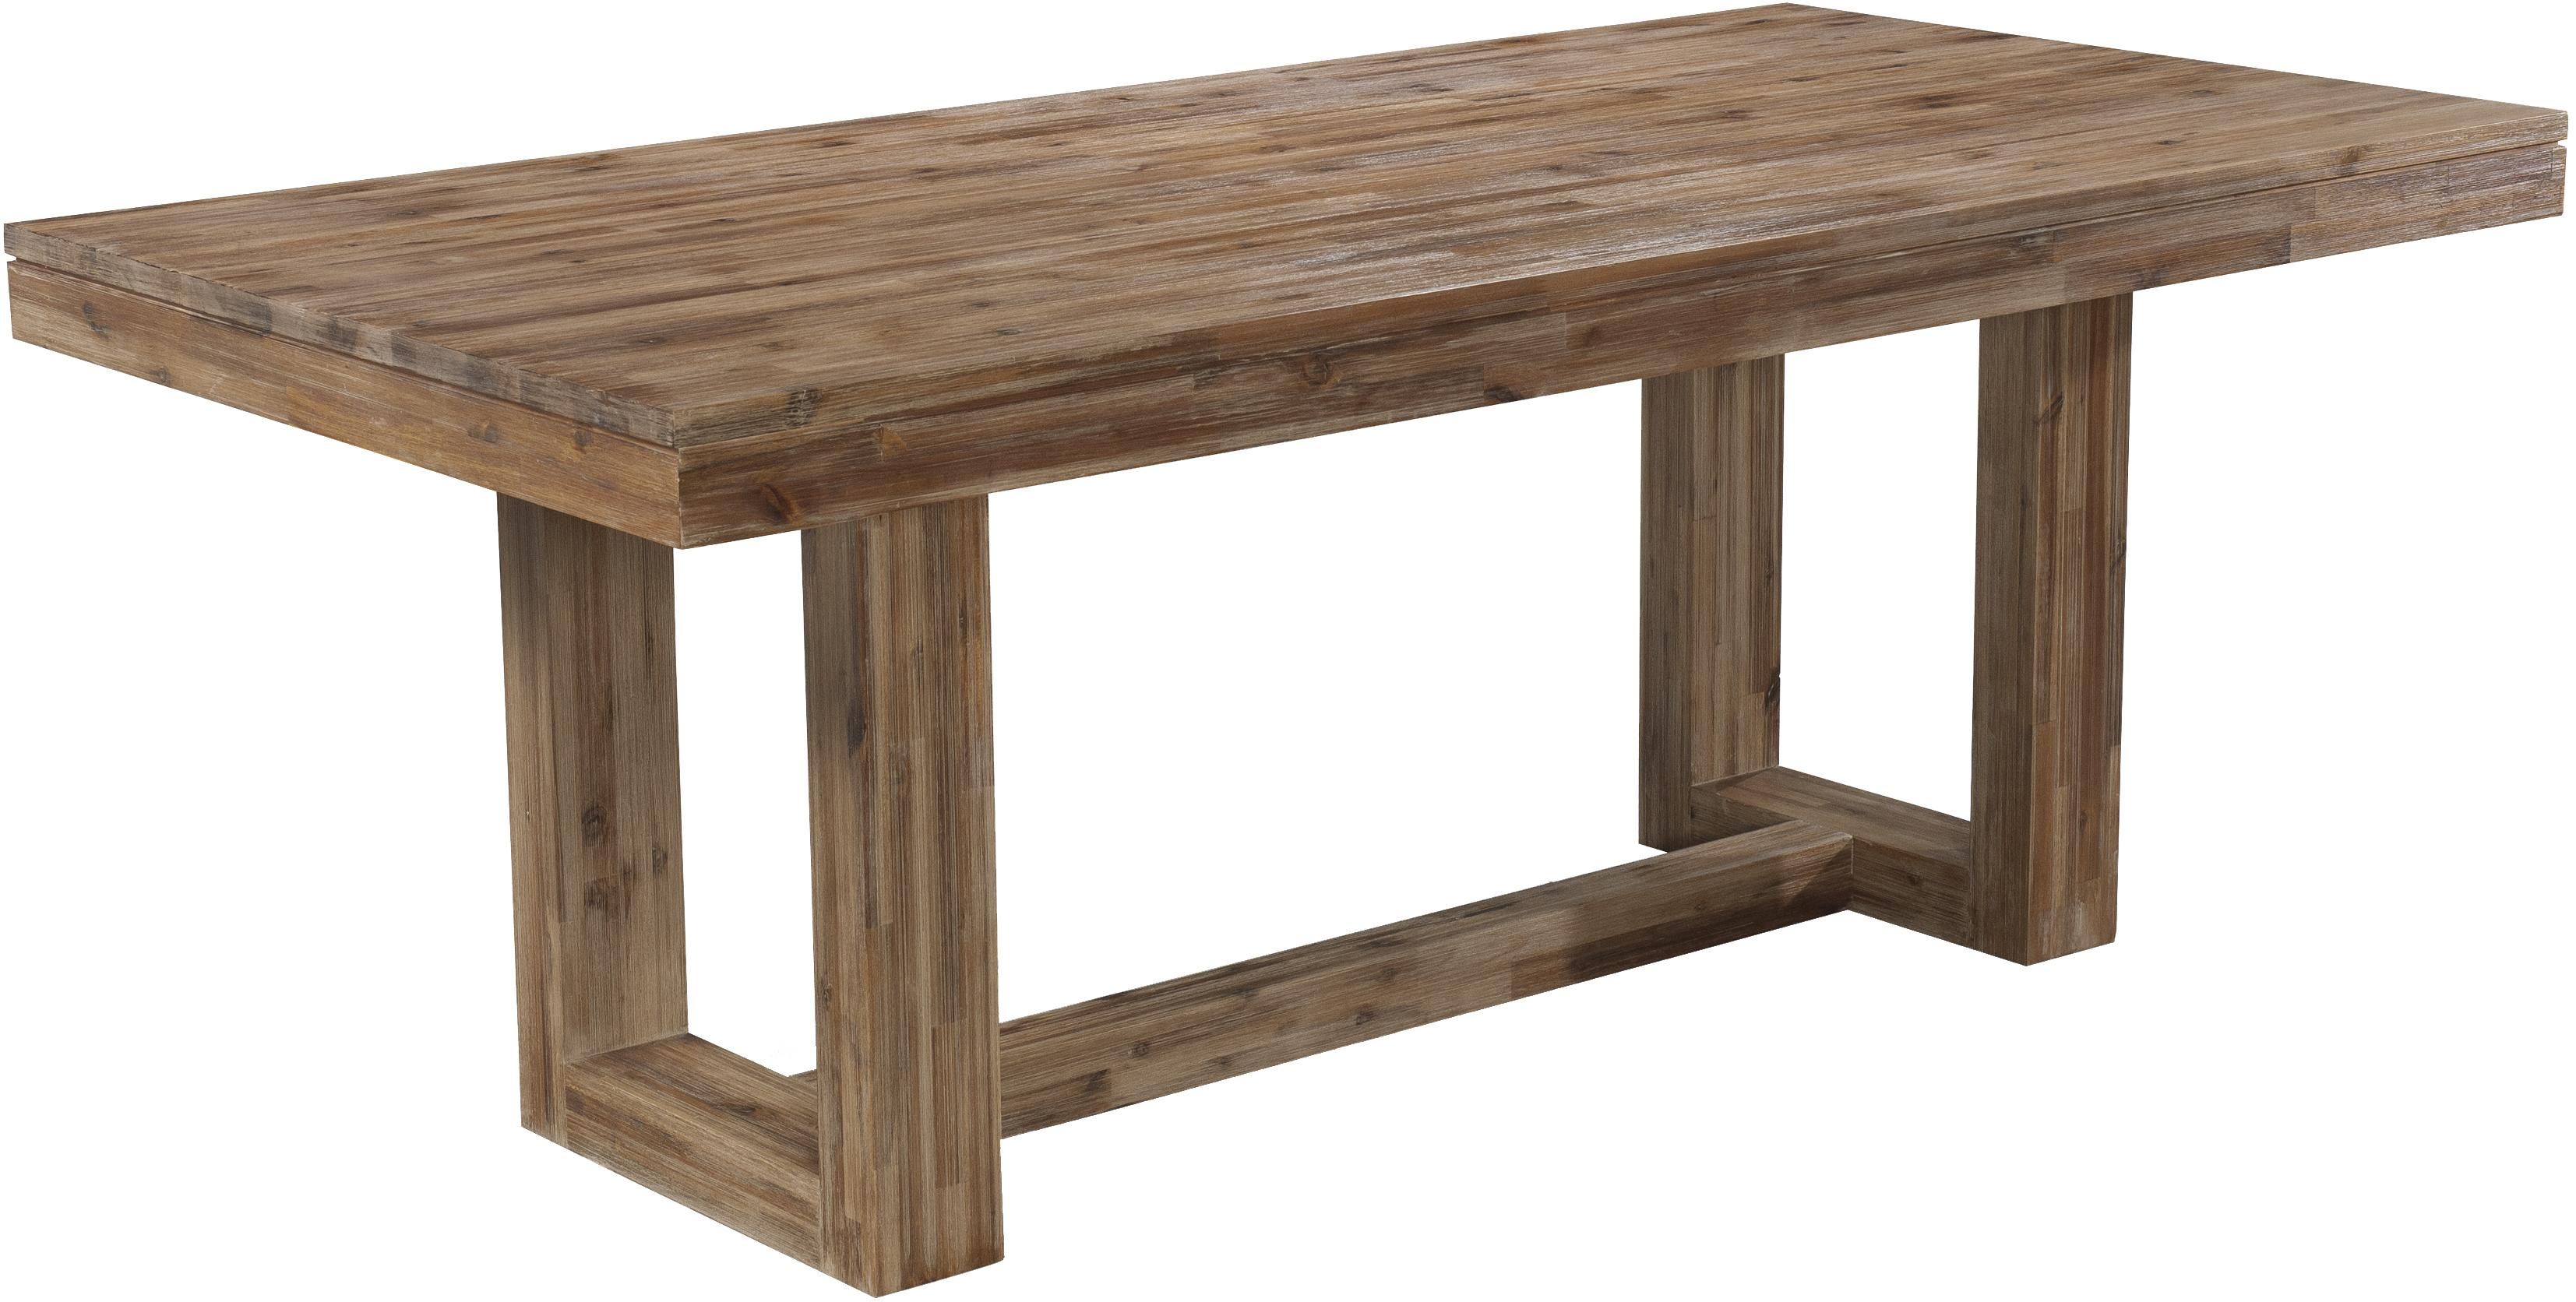 Modern Rectangular Dining Table with Rustic Trestle Base by